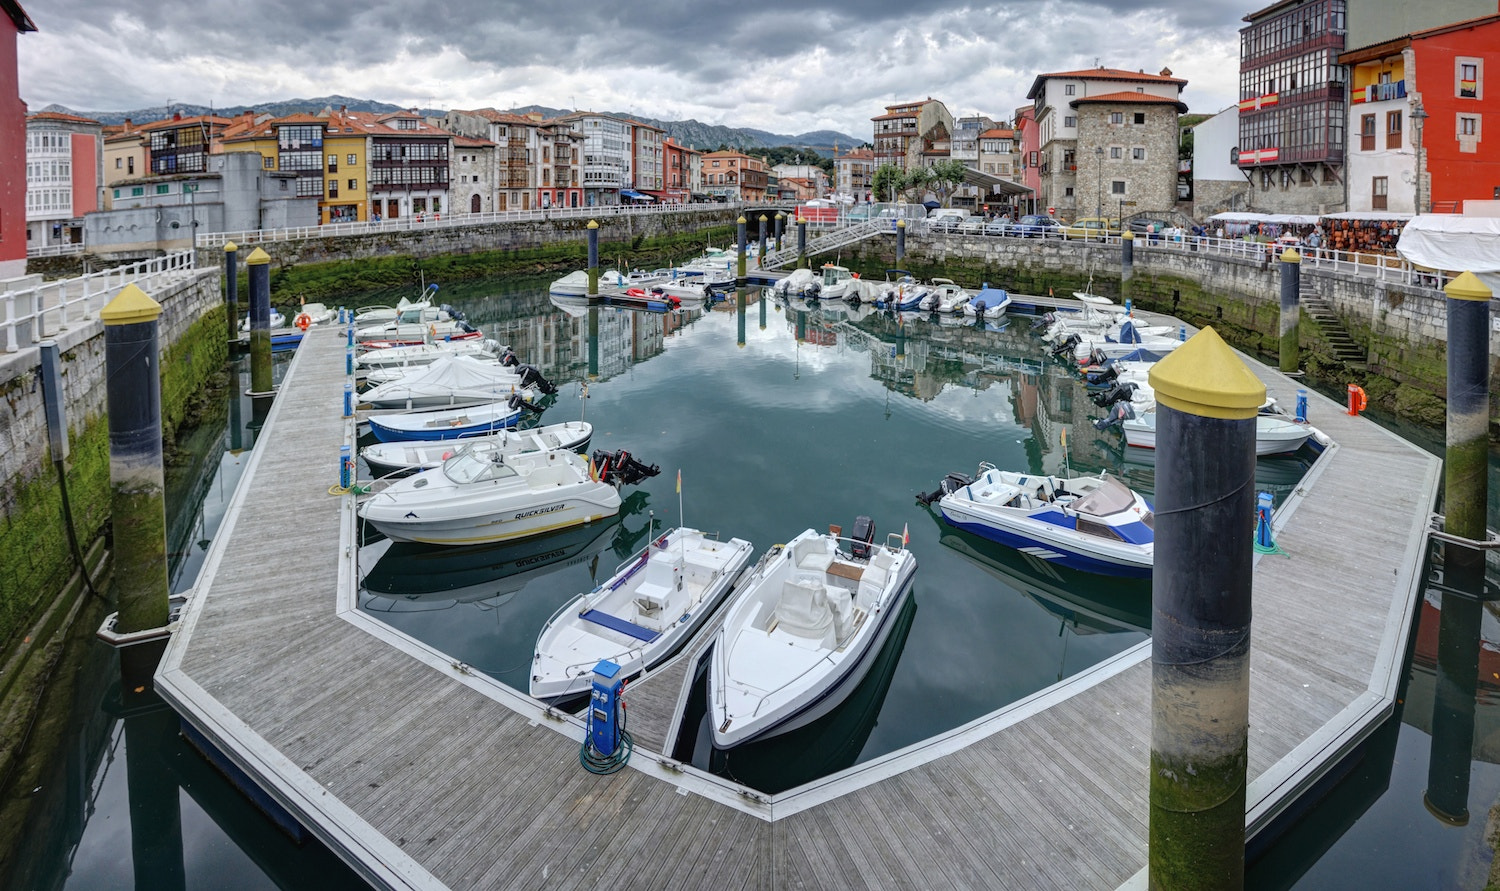 Photograph Llanes by Francisco Rodriguez on 500px